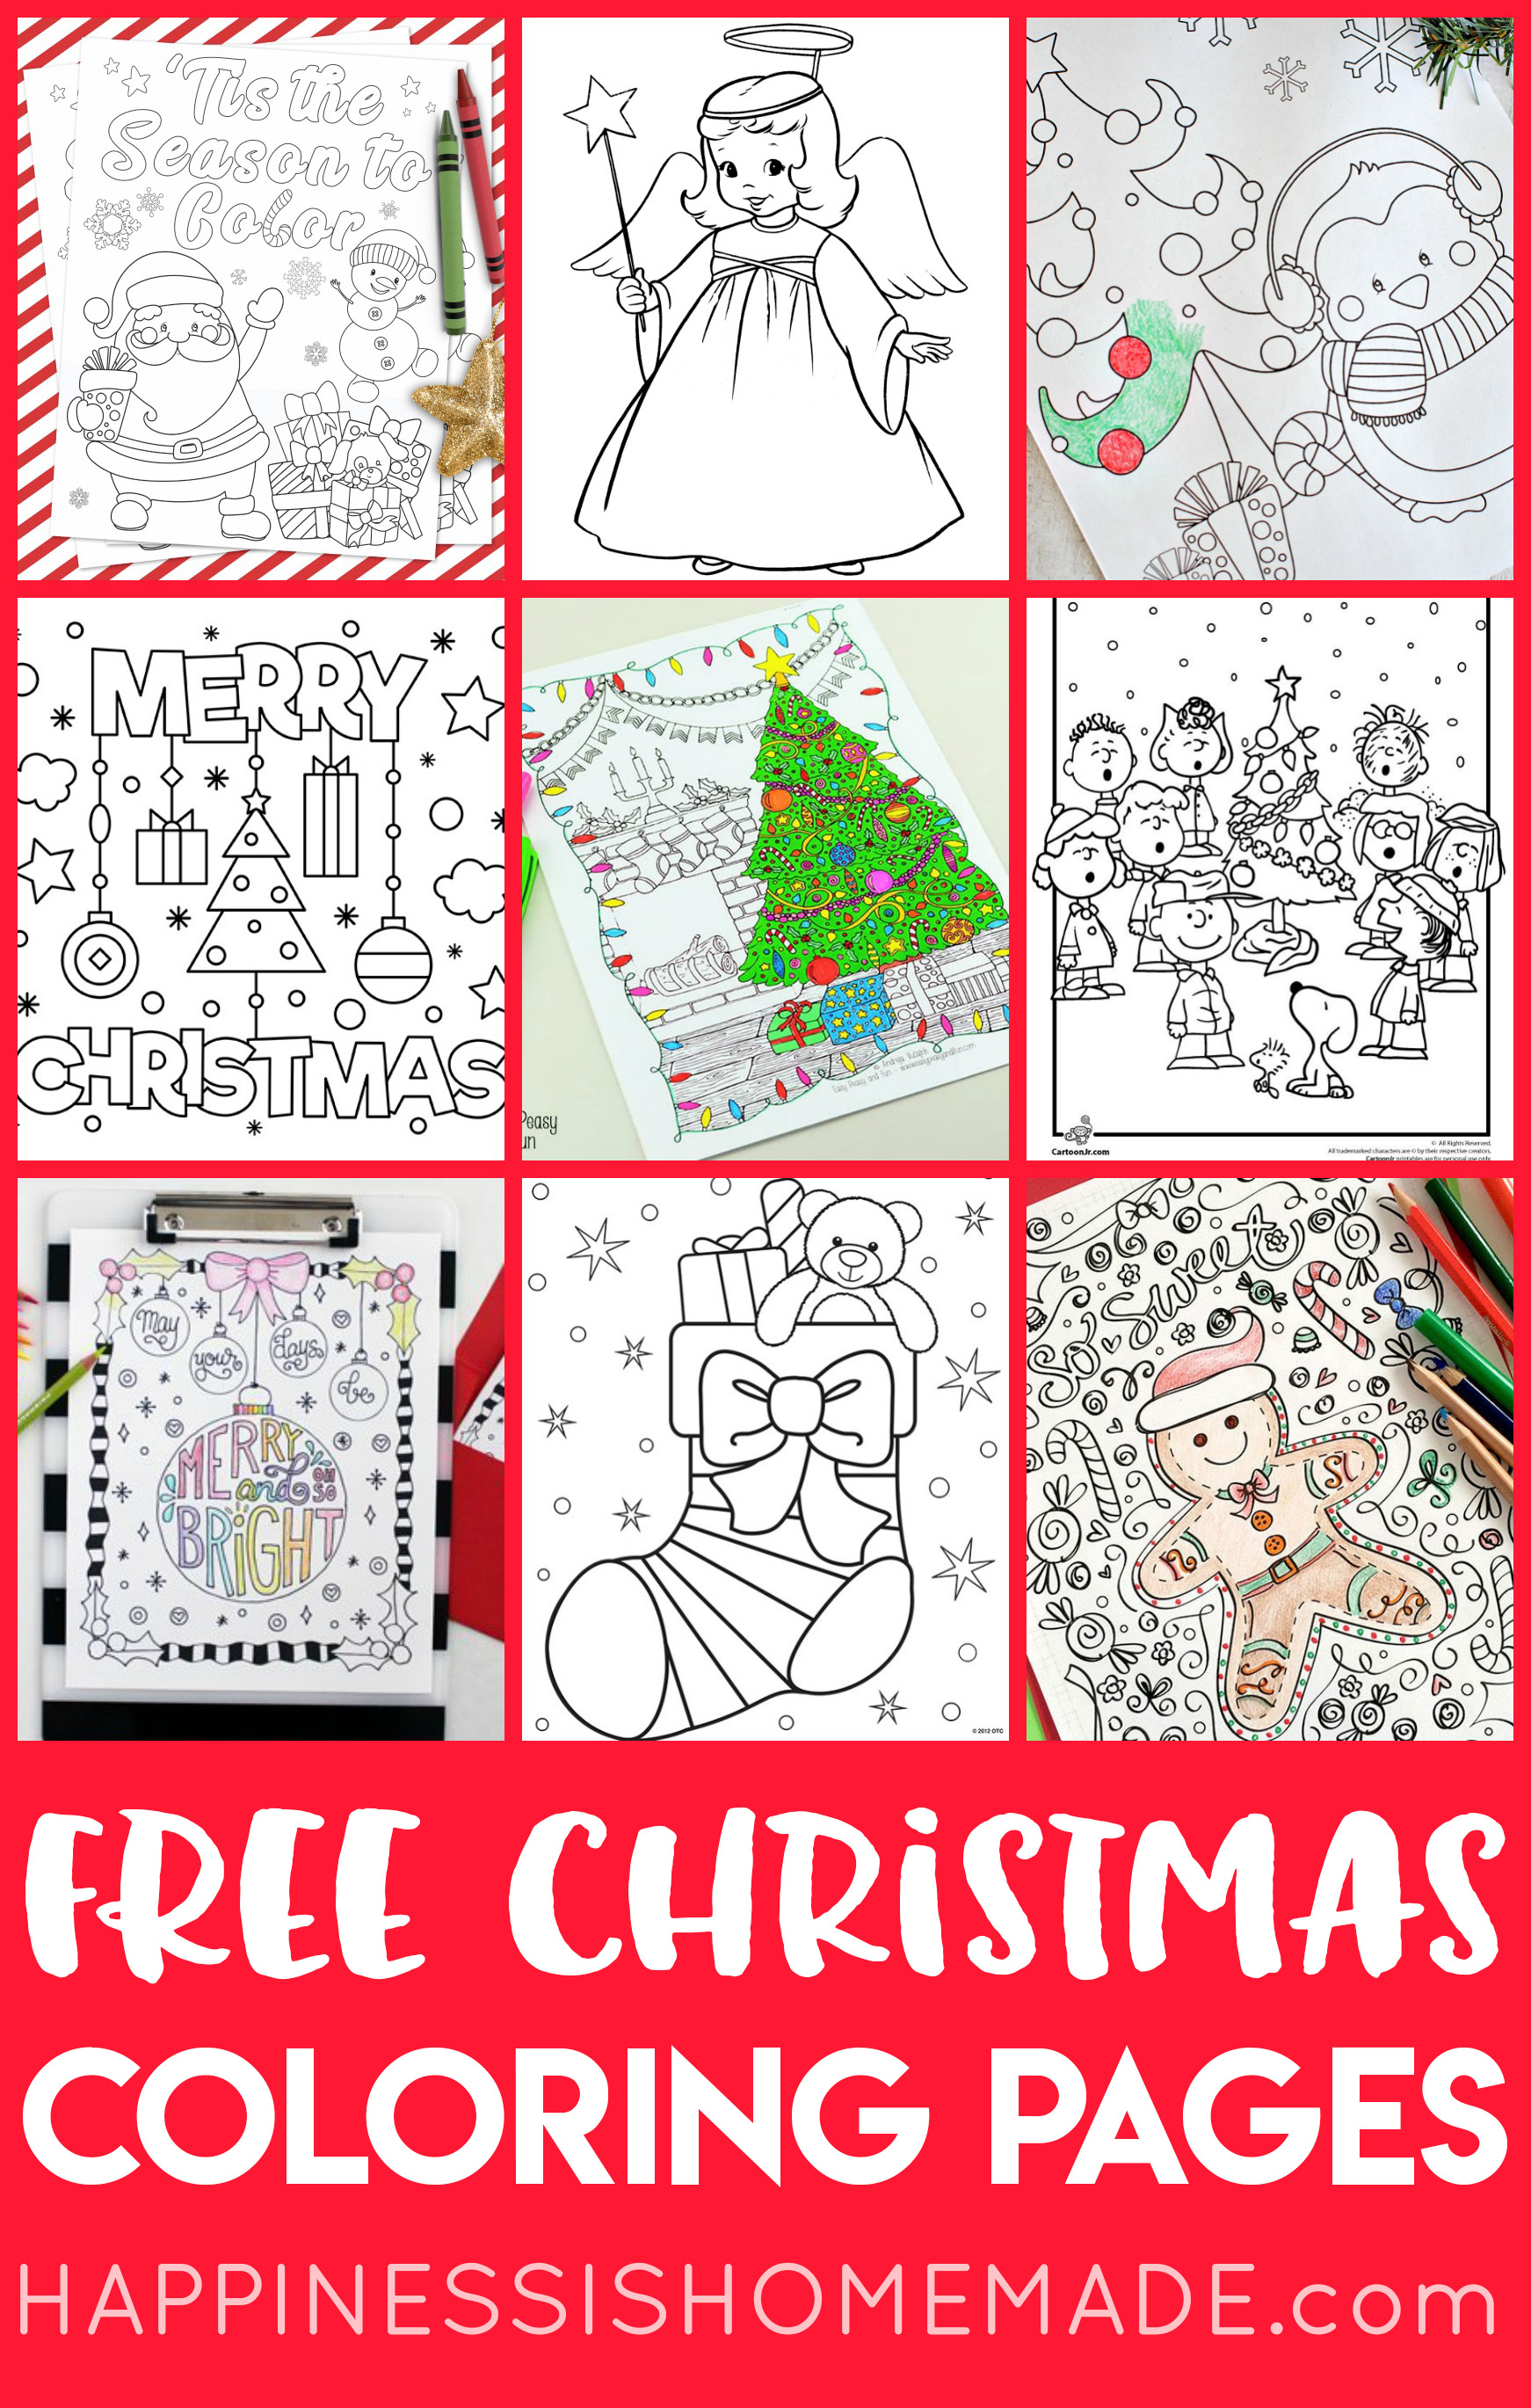 Free Christmas Coloring Pages For Adults And Kids Happiness Is